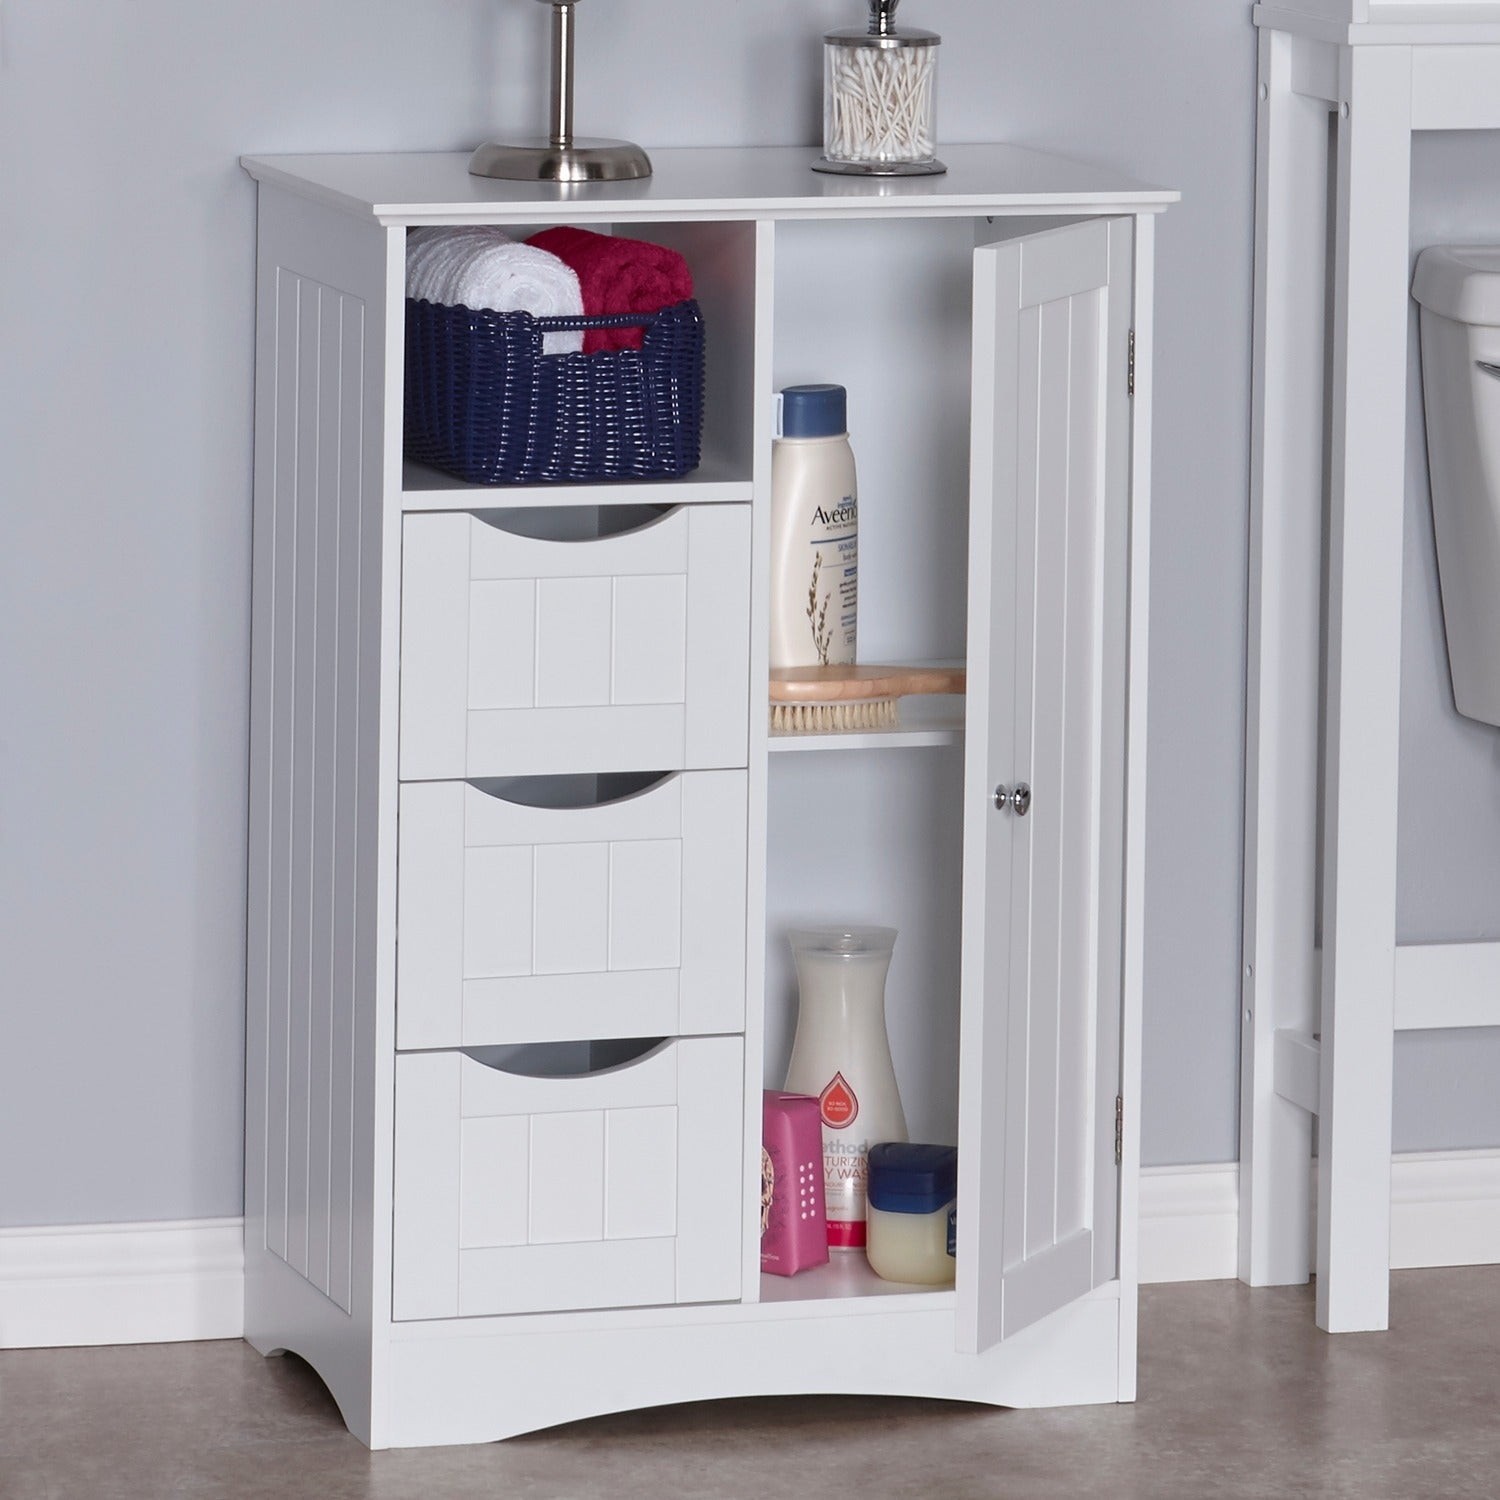 RiverRidge Home Somerset One-door Floor Cabinet - Free Shipping ...